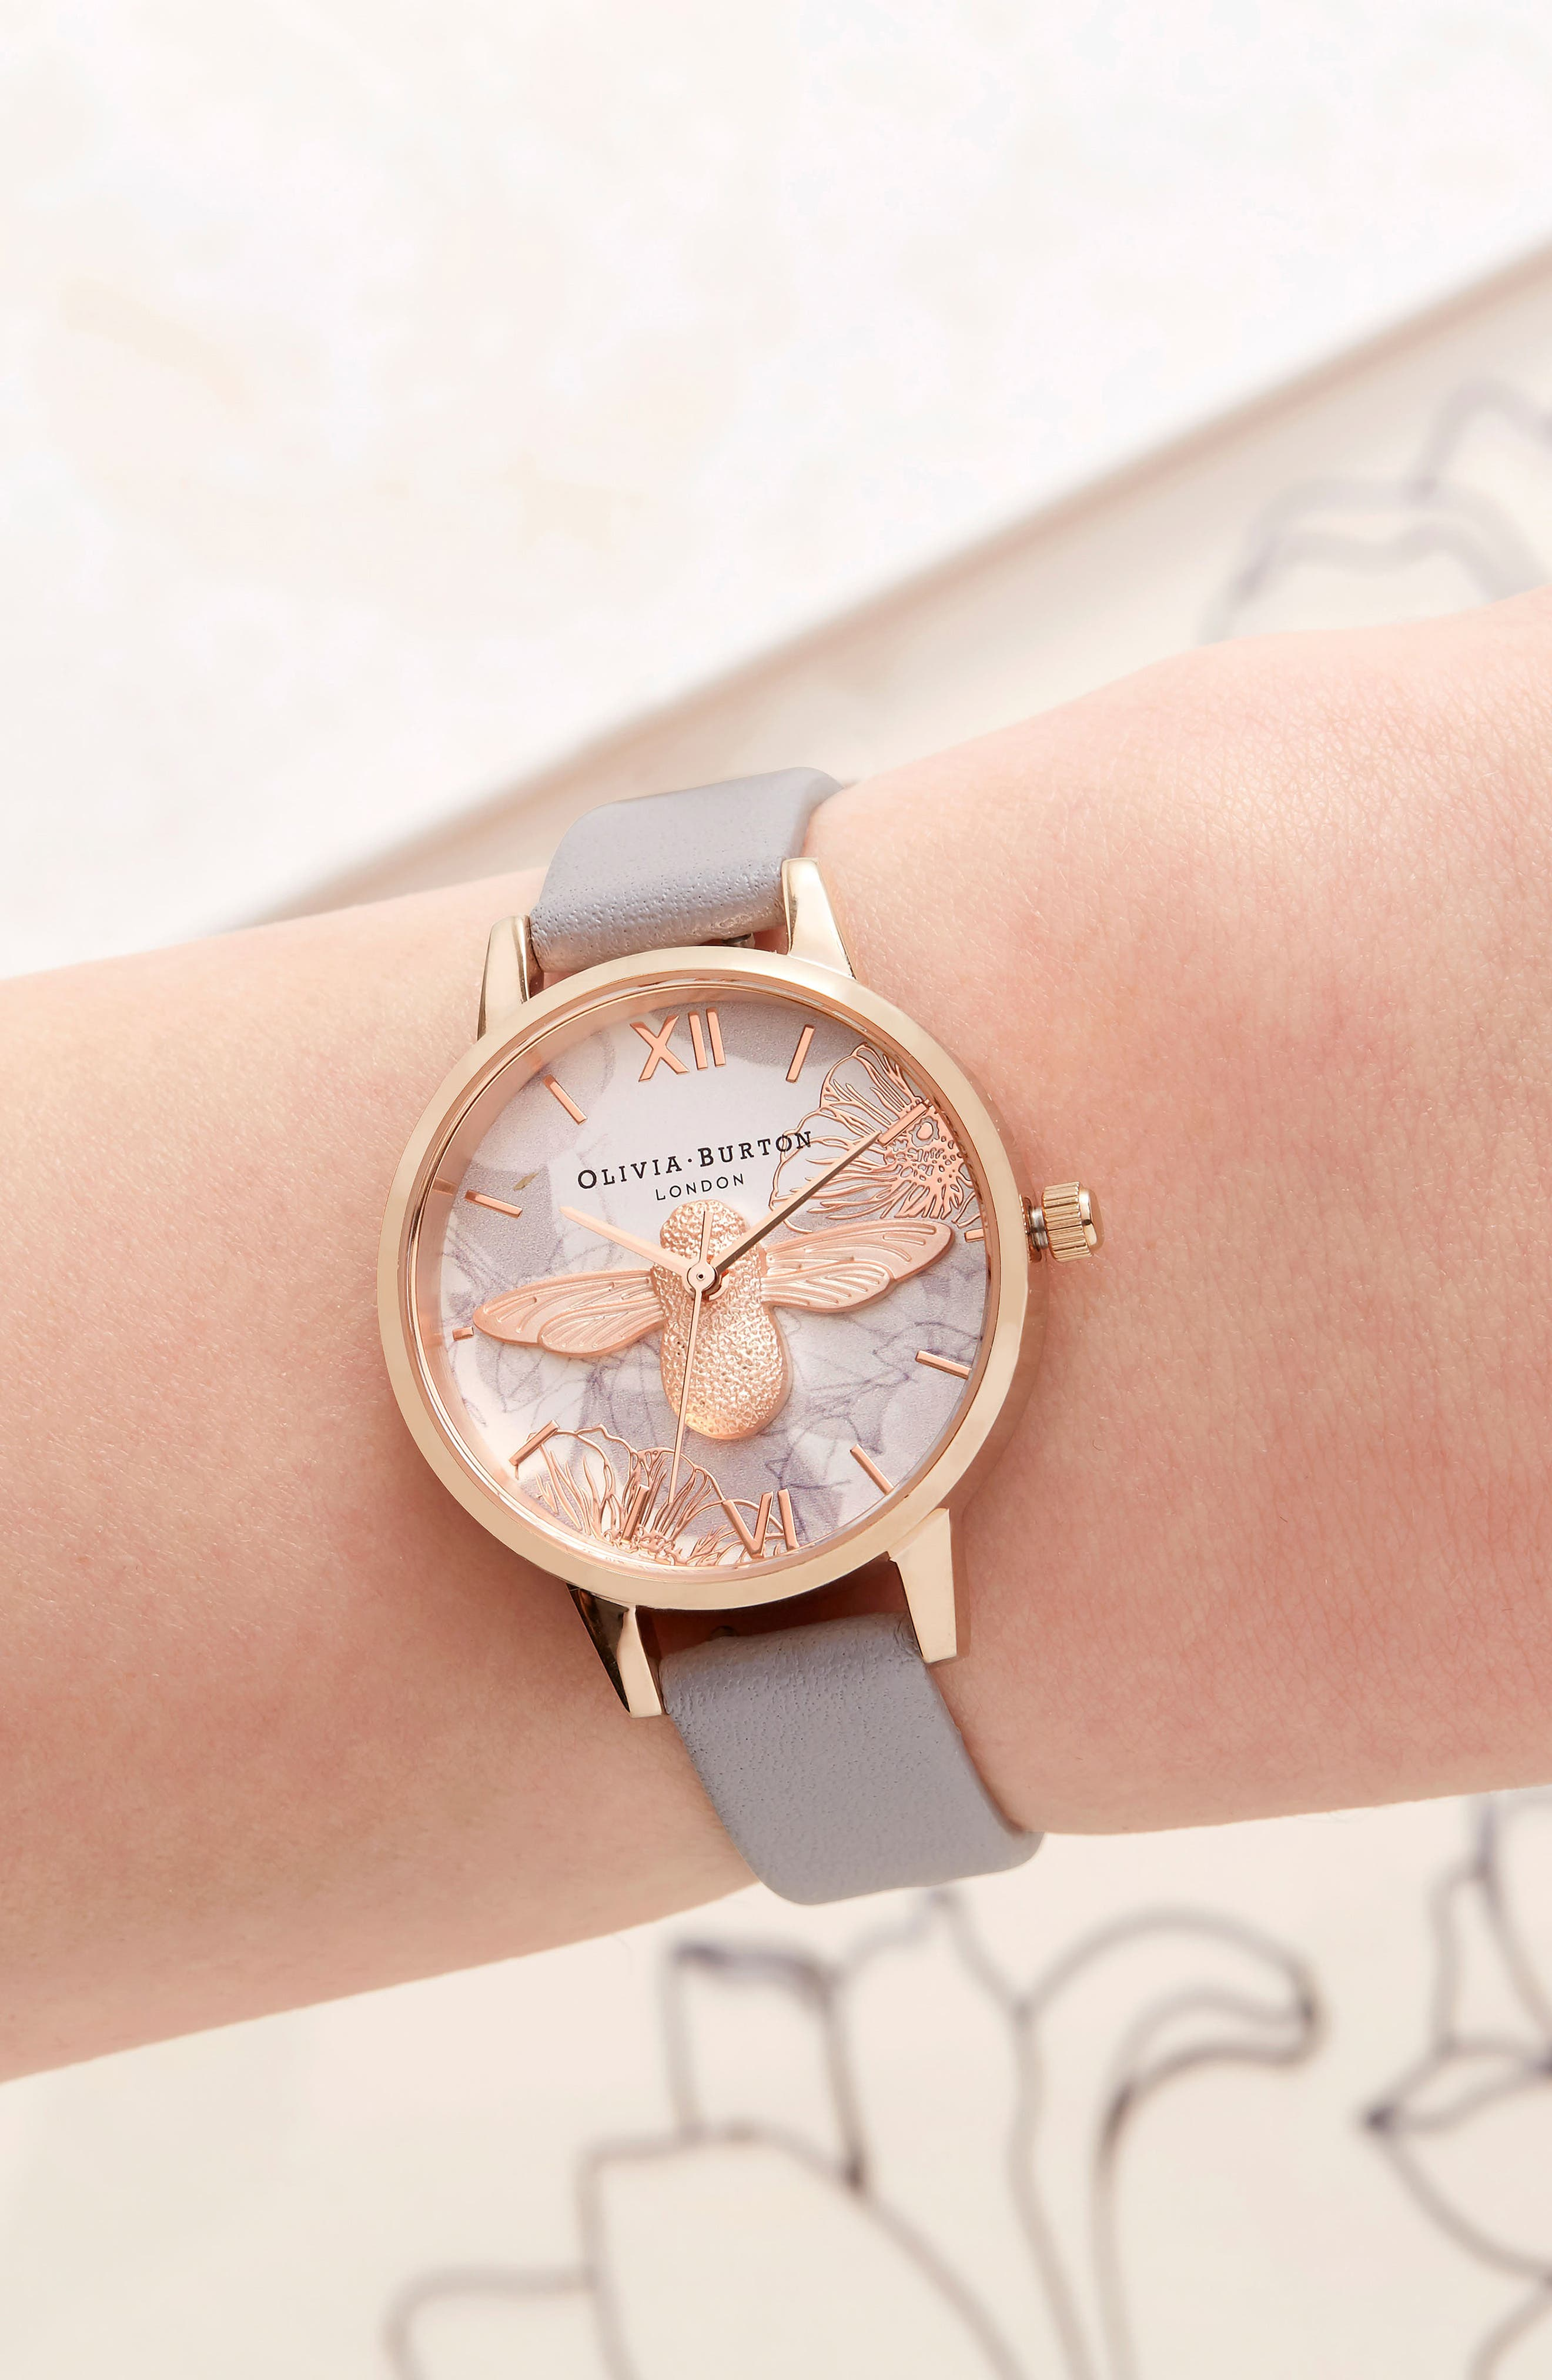 Abstract Florals Leather Strap Watch, 30mm,                             Alternate thumbnail 2, color,                             GREY LILAC/ WHITE/ ROSE GOLD